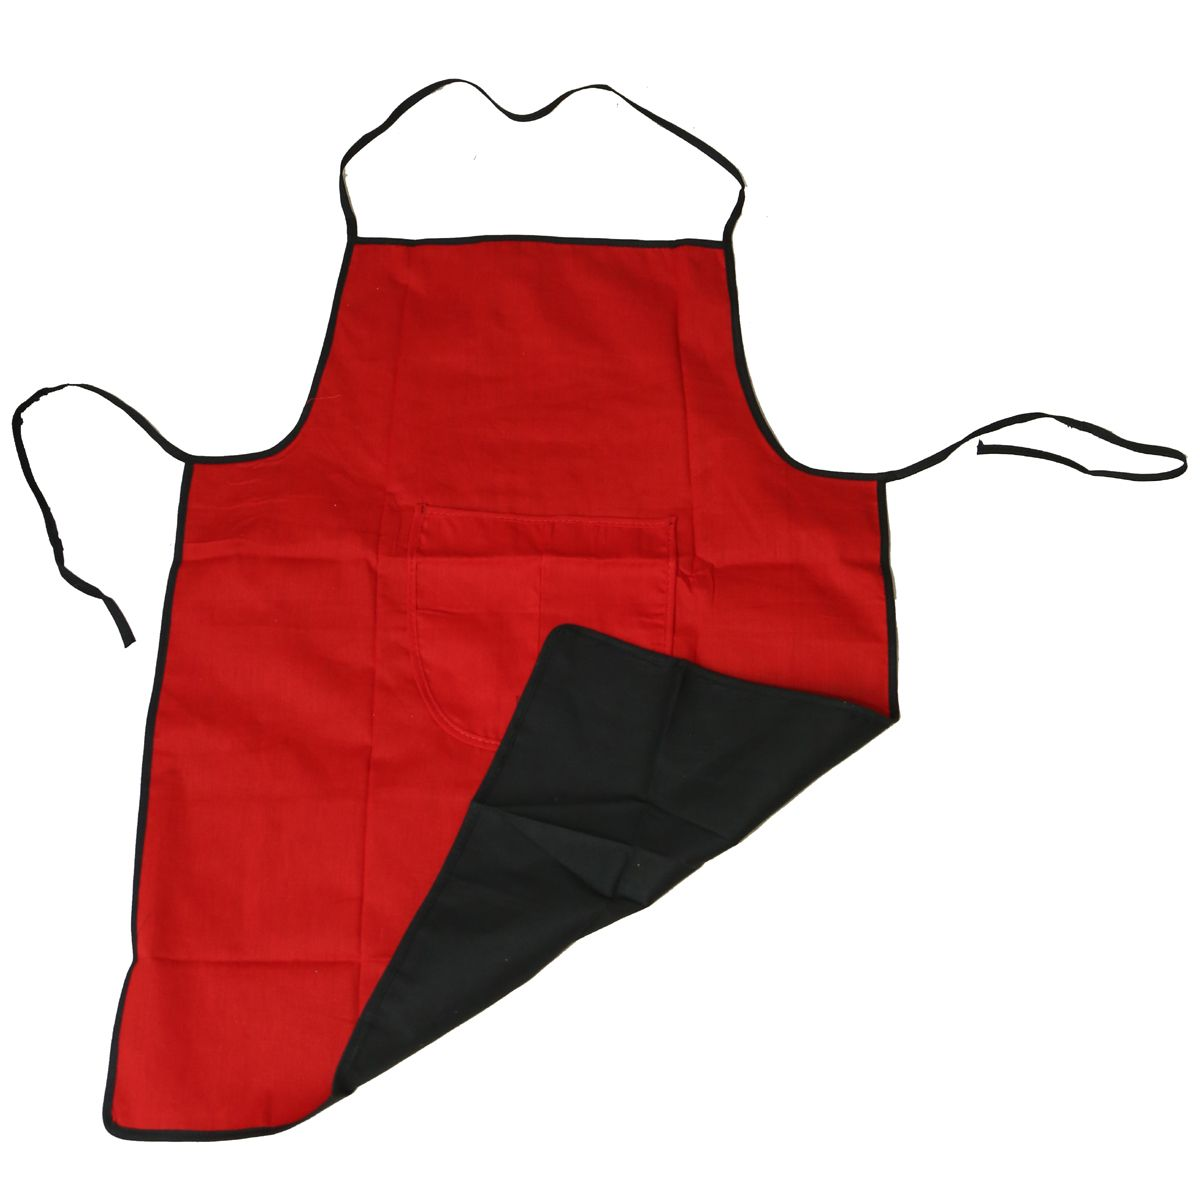 Kuber Industries™ Red & Black Revesible Kitchen Apron With Front Pocket Set of 2 Pcs  (Code- APRN04) Can be used from both sides